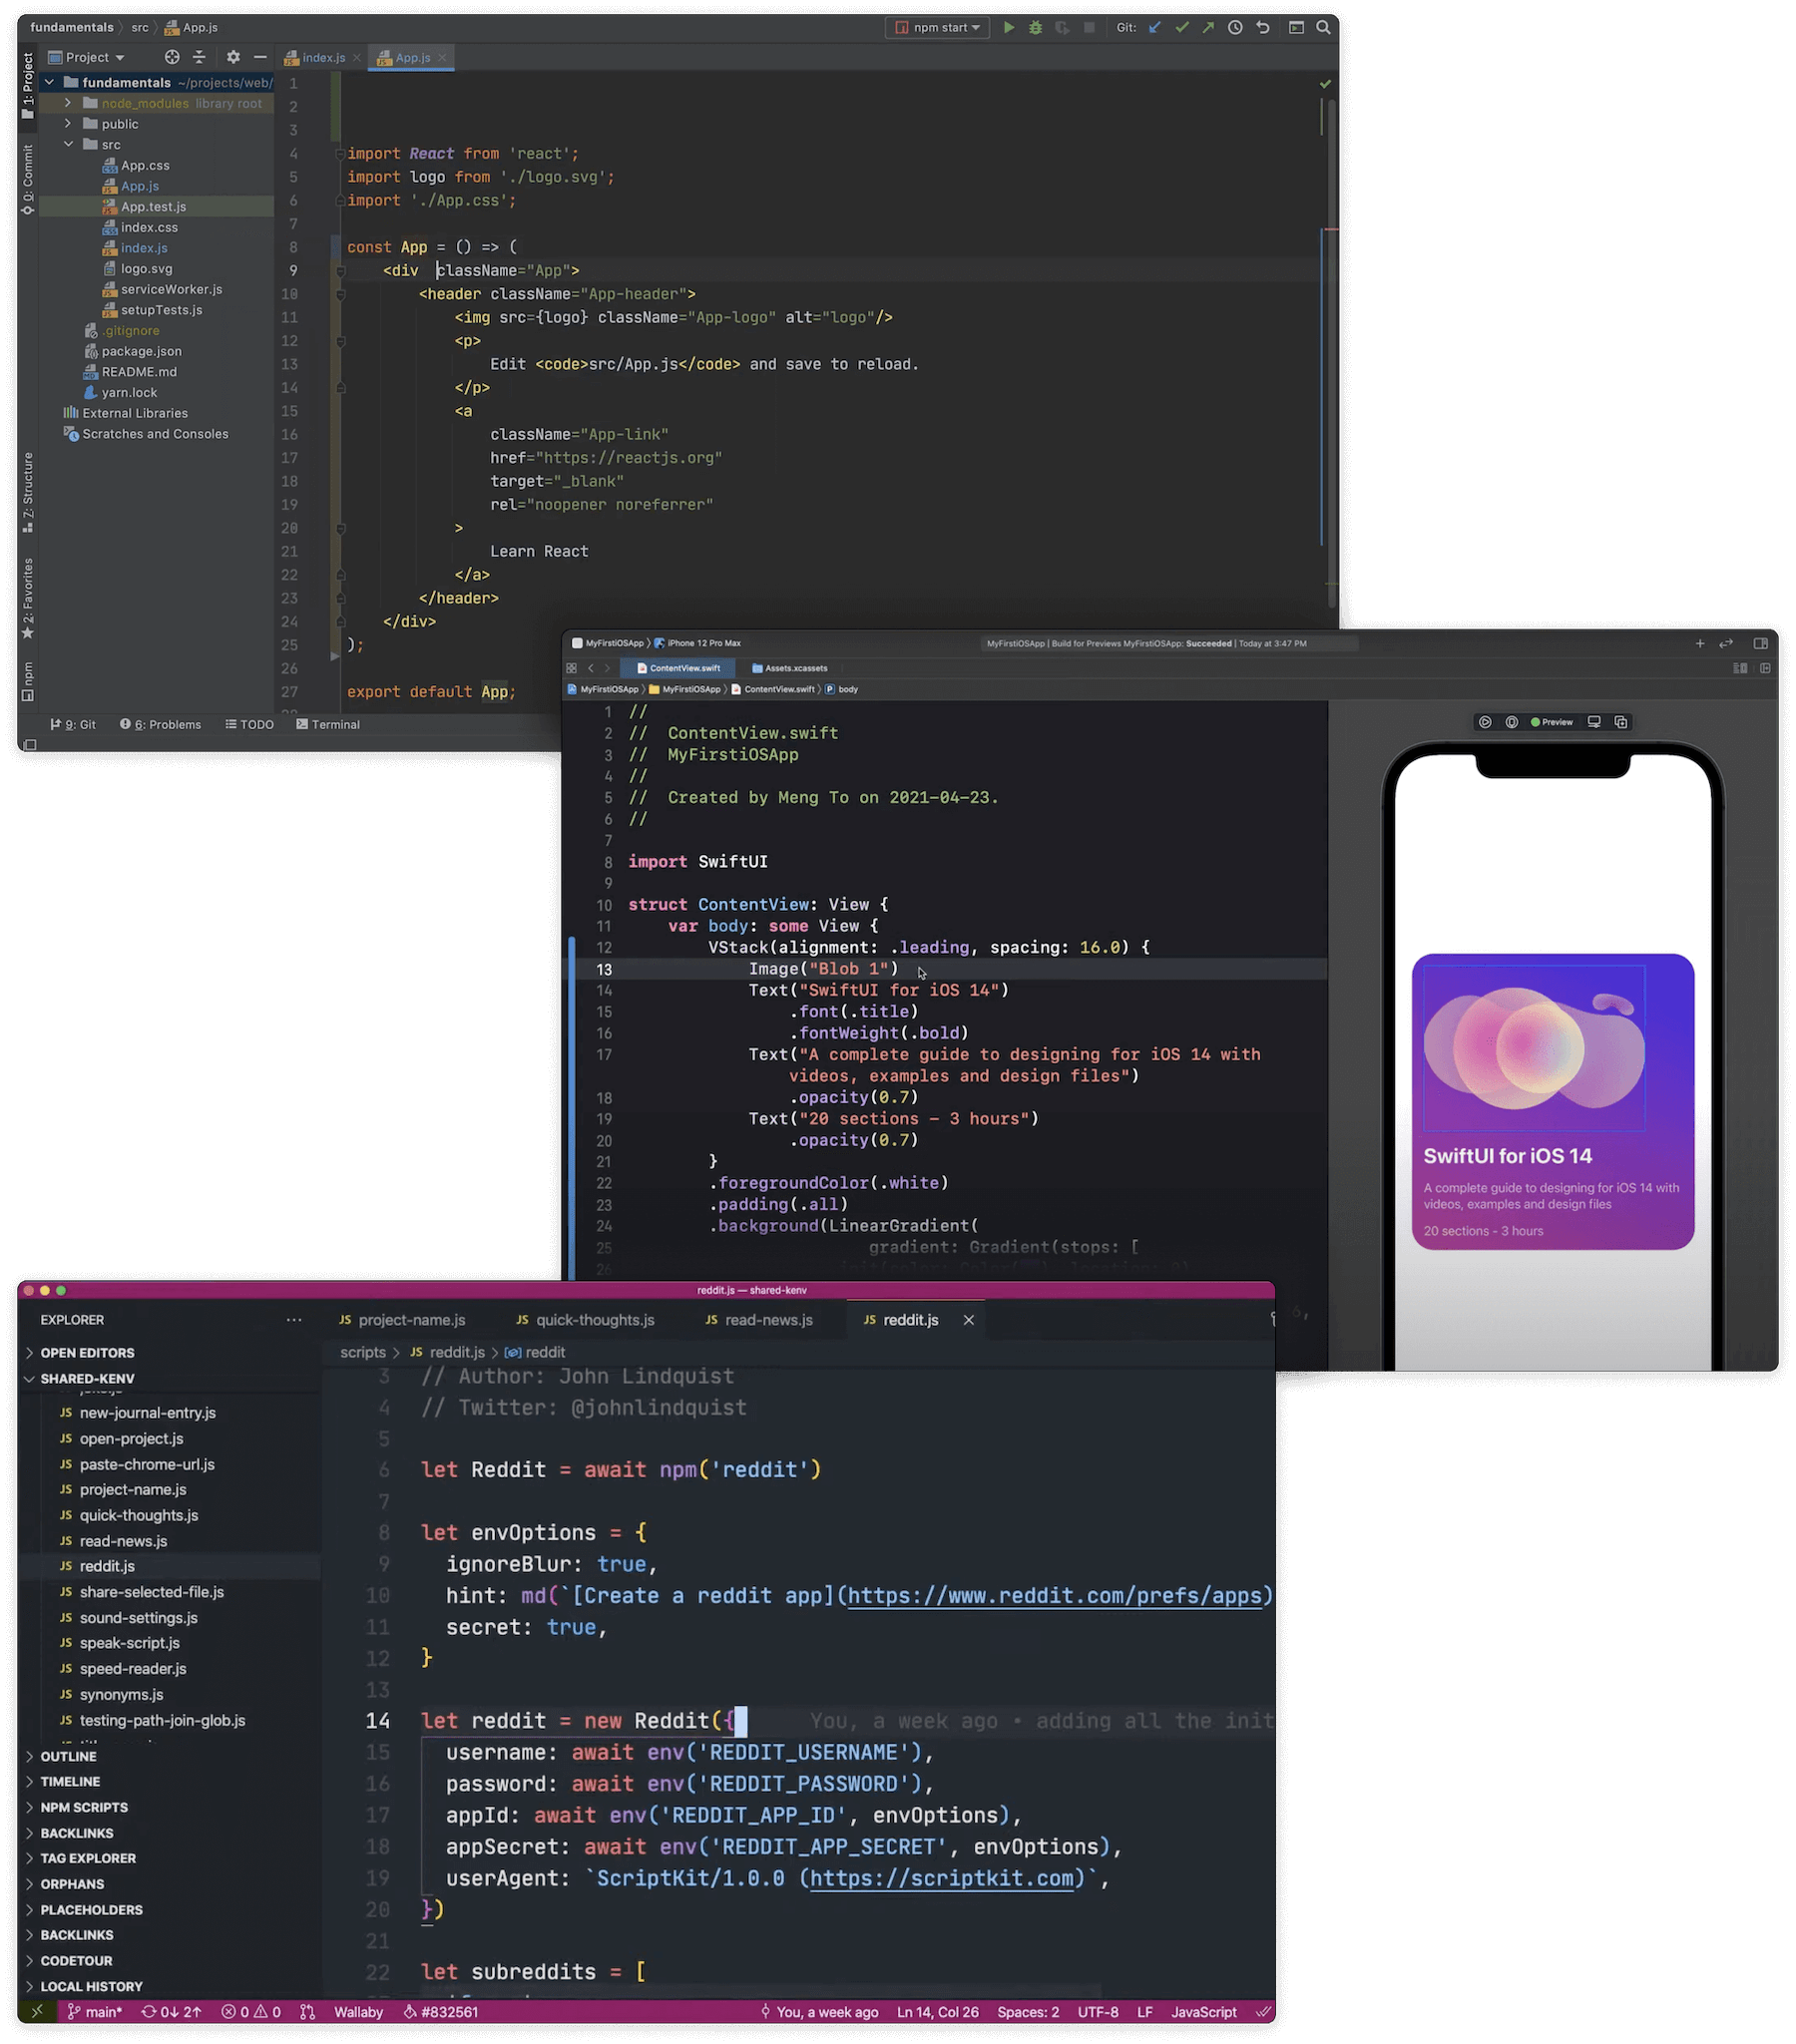 The standard text-heavy interfaces of WebStorm, xCode, and VSCode